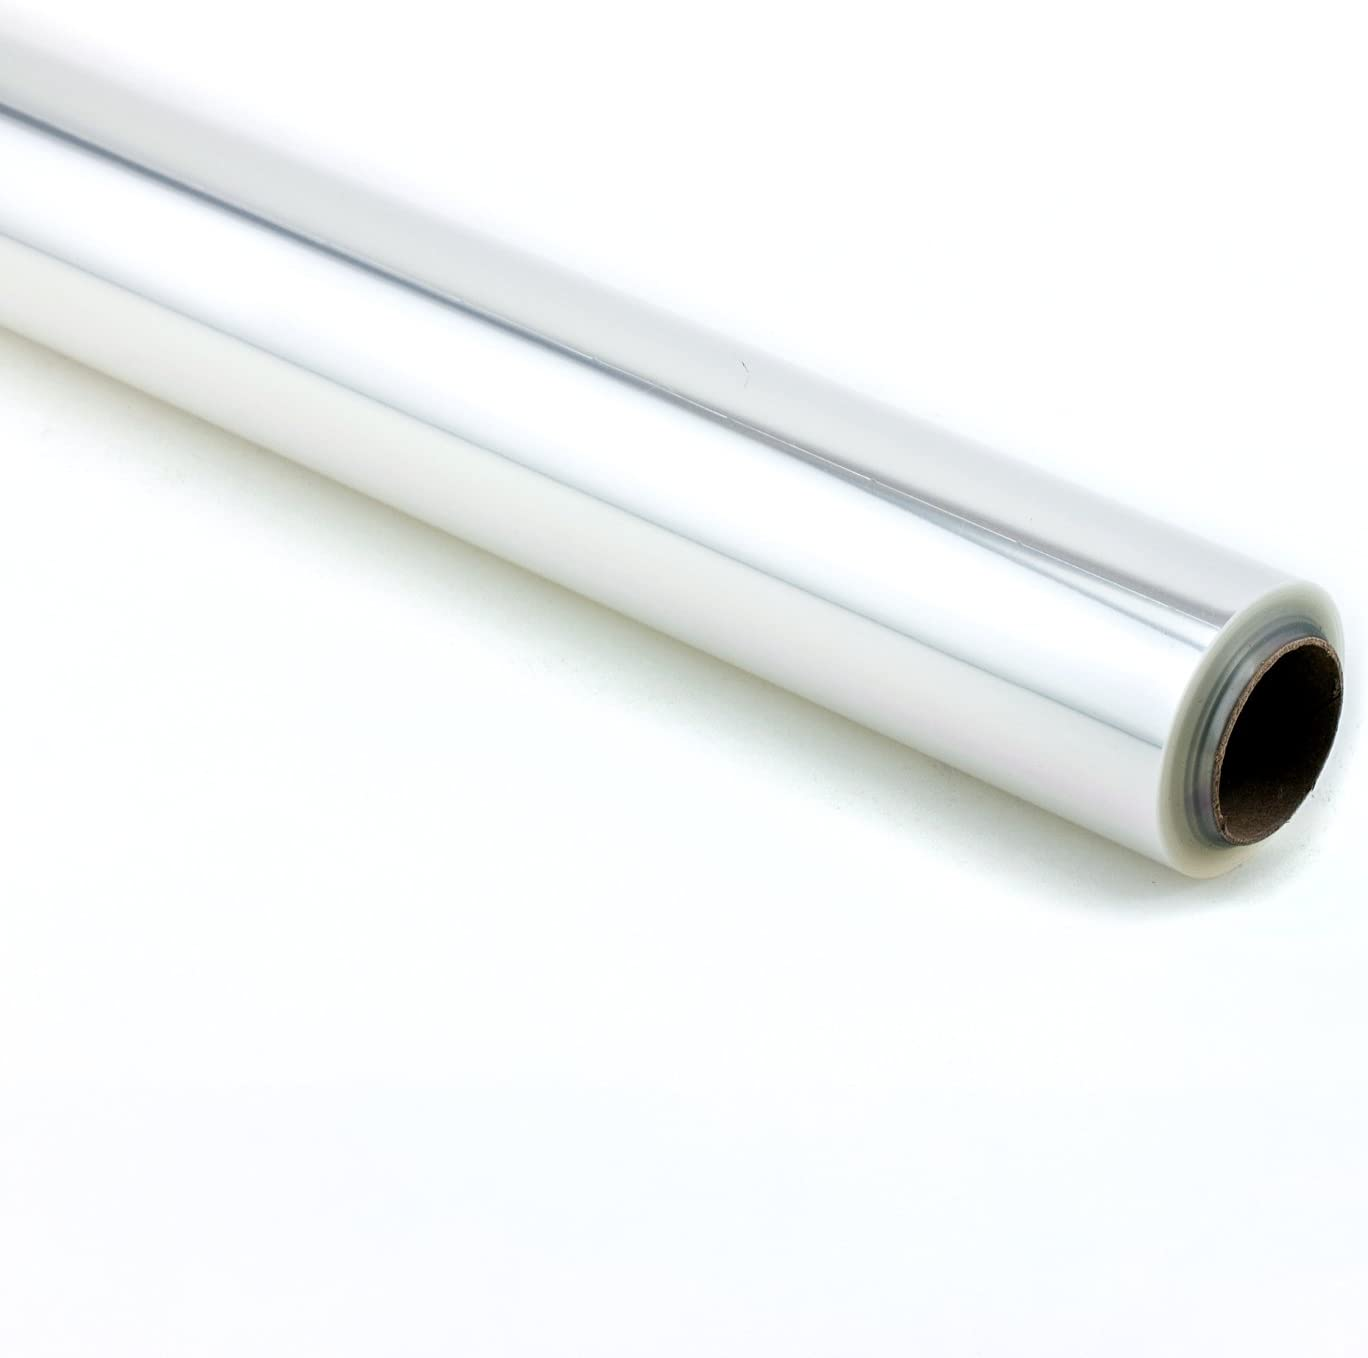 Tytroy Gift Wrapping Clear Cellophane Roll for Gift Baskets, Christmas Wrapping Arts and Crafts (40 in. x 100 ft)